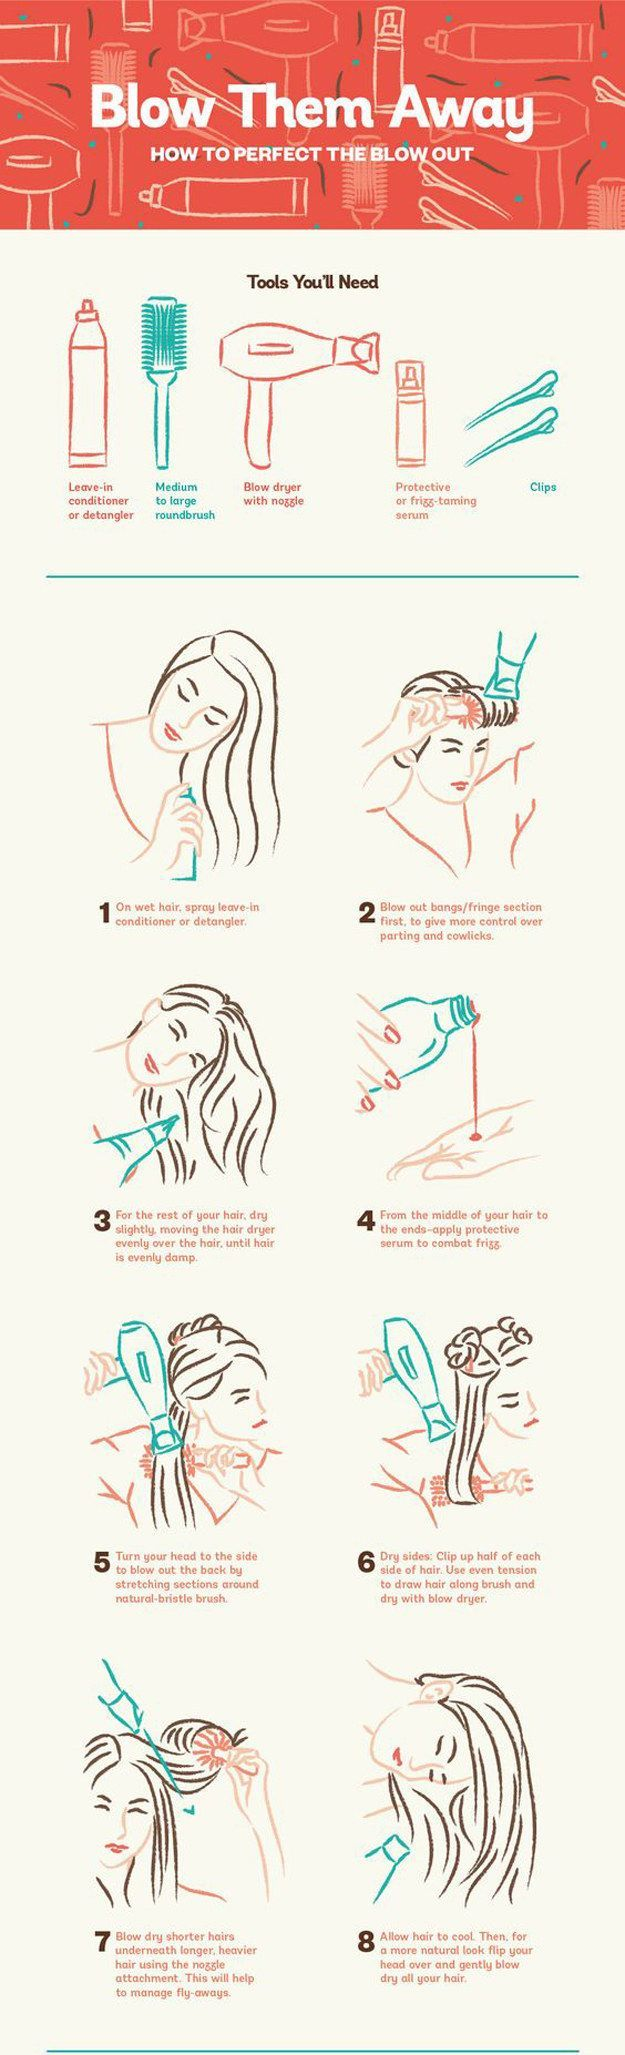 Here's how to get the best blow out.